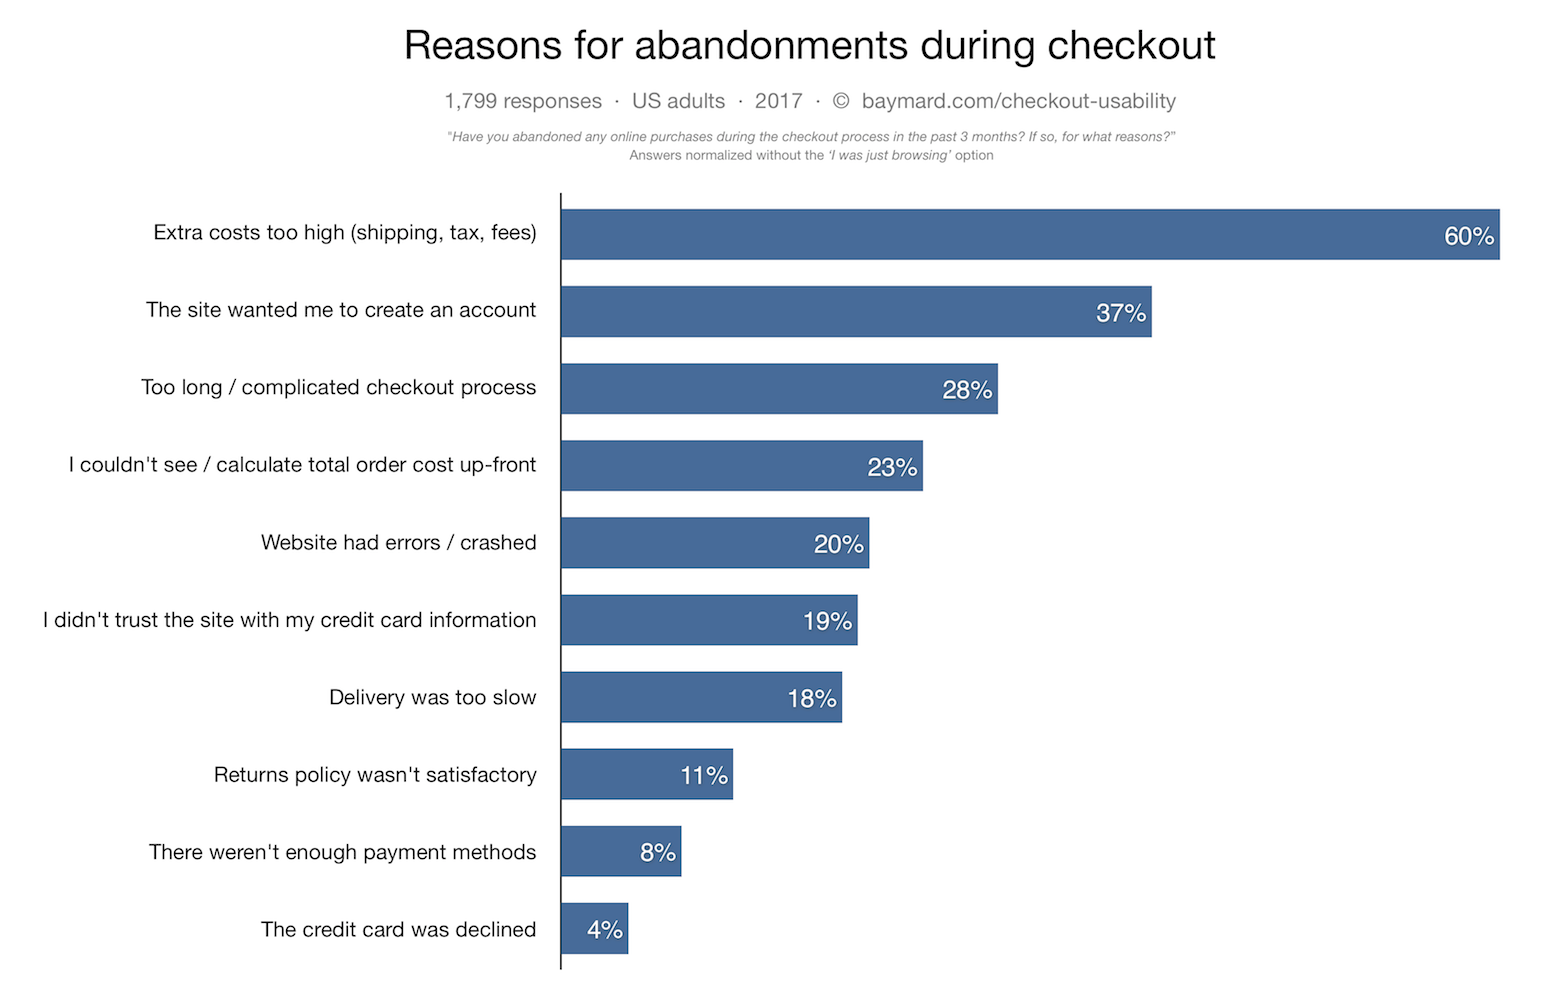 abandonment during checkout affects last mile delivery